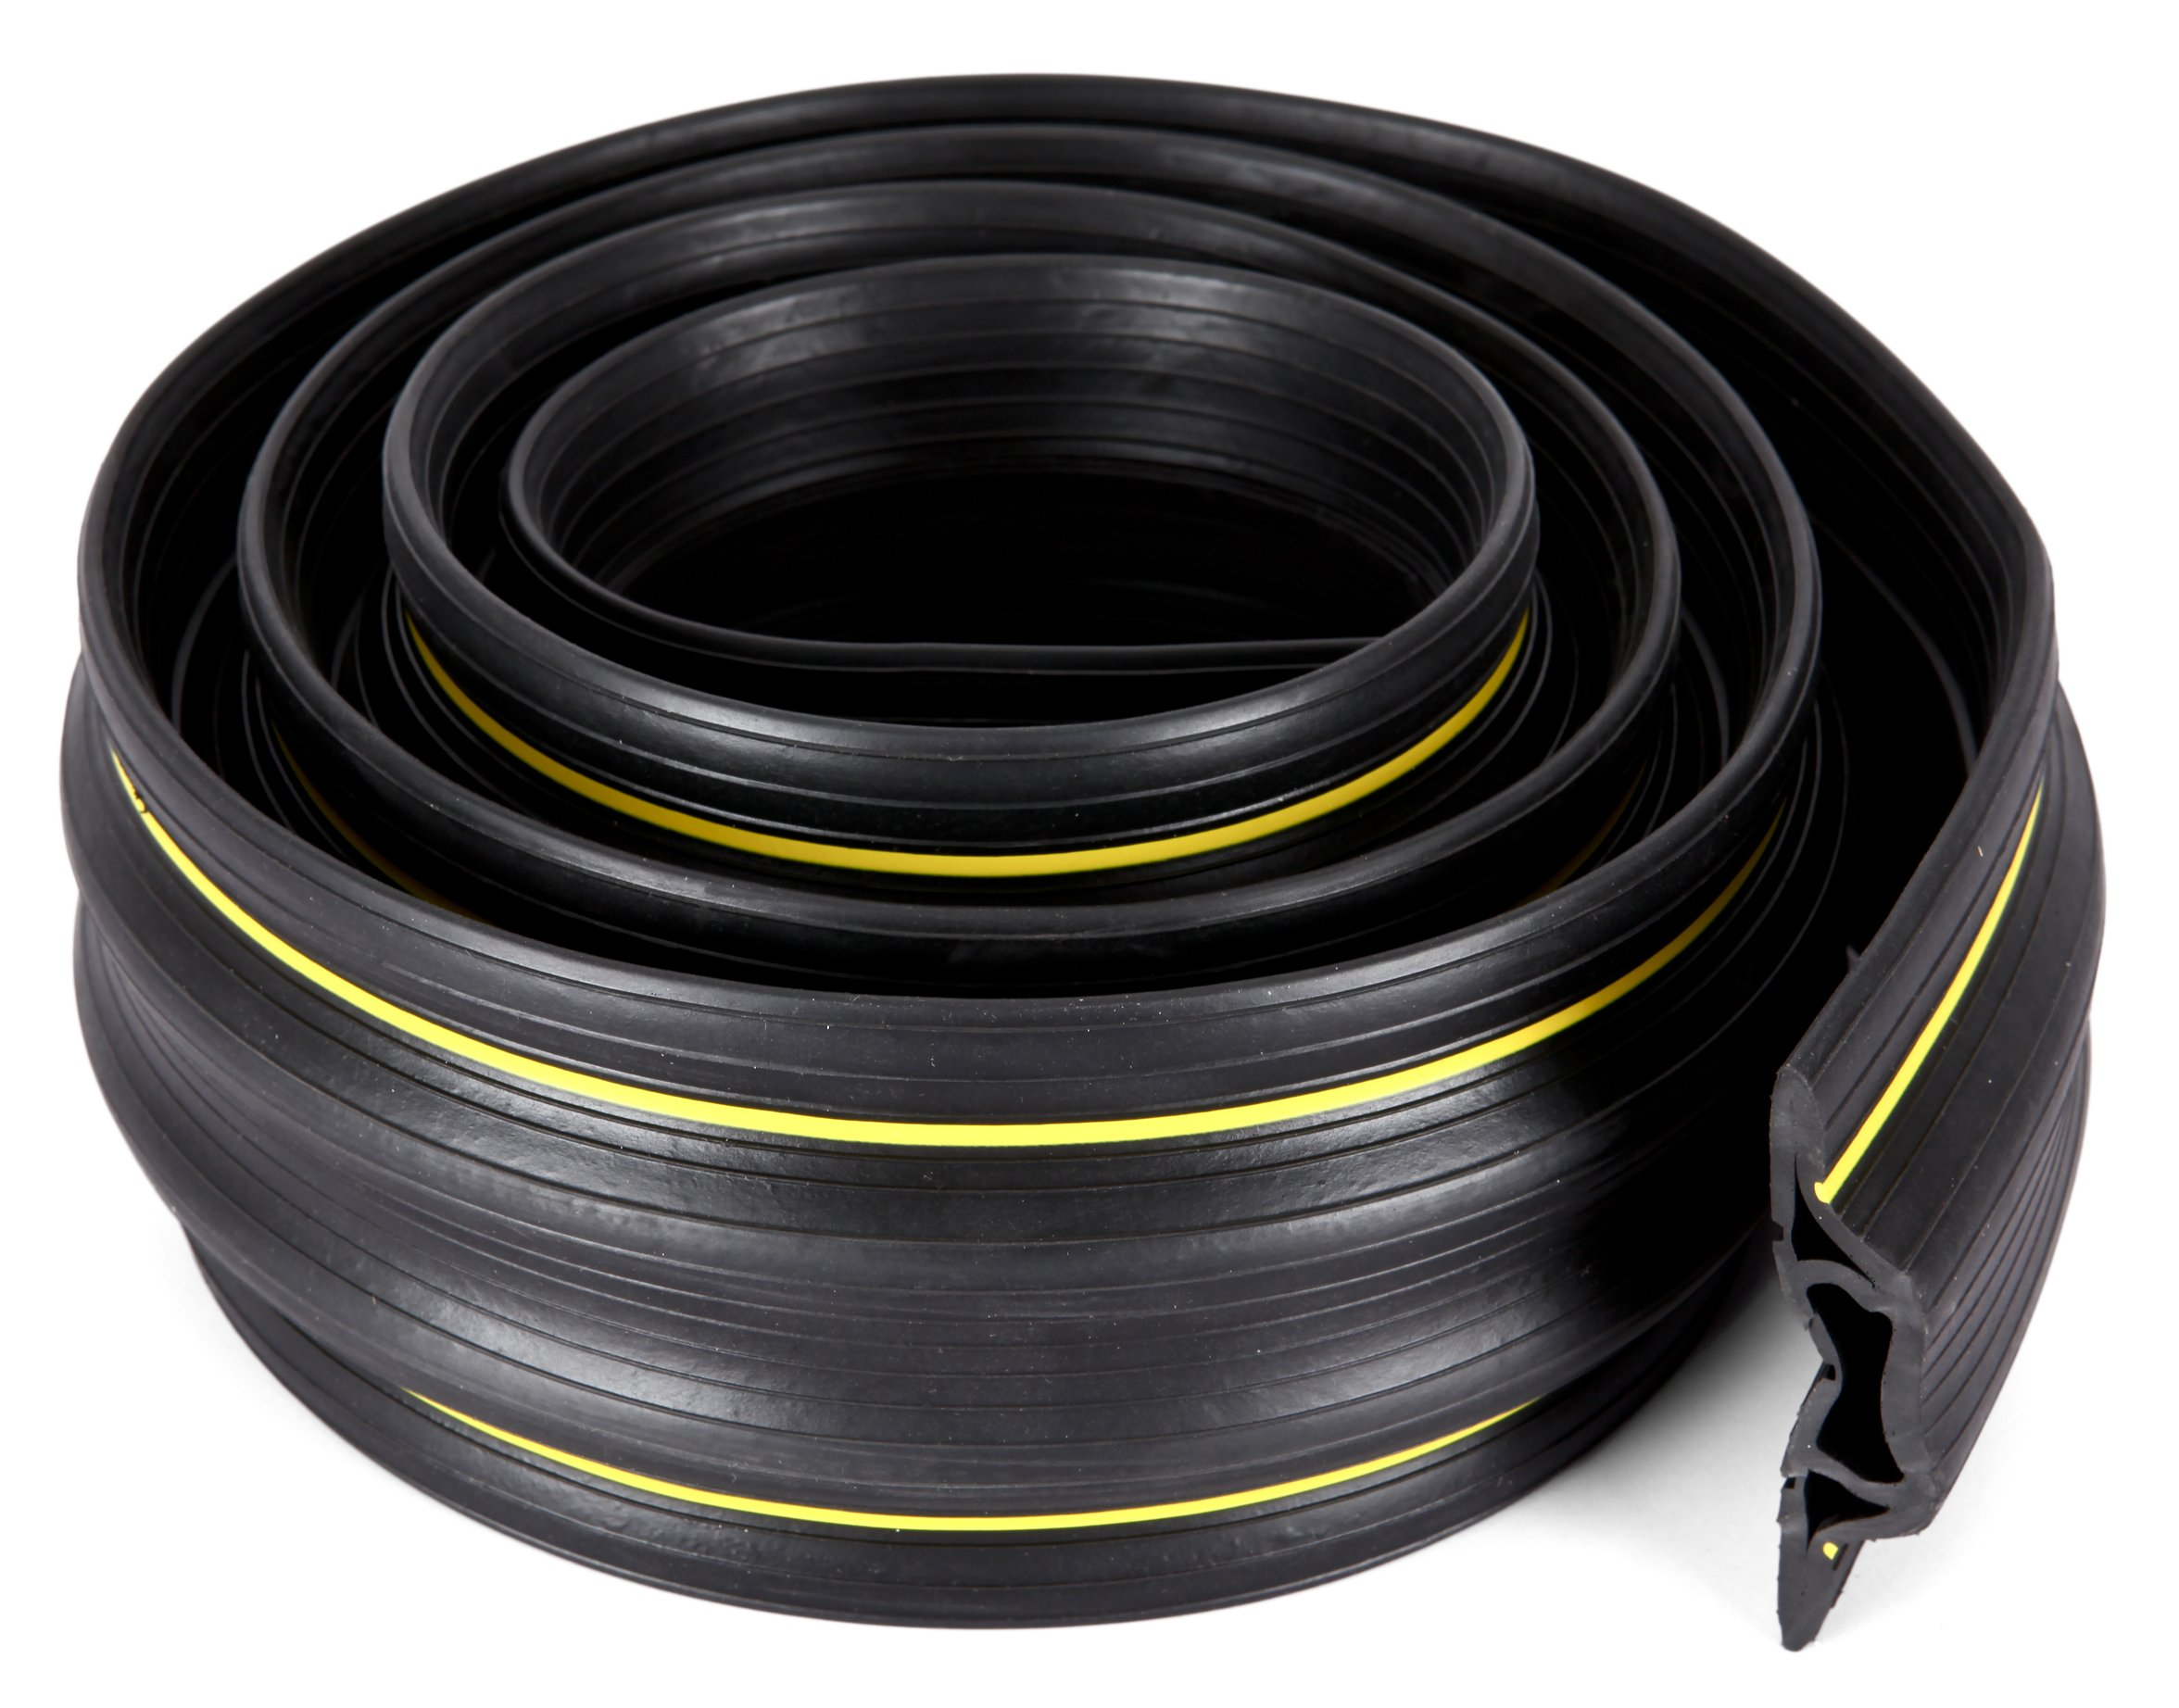 3 Channel Cable Protector + Cord Cover - 6.5 Feet (2 Meters ...